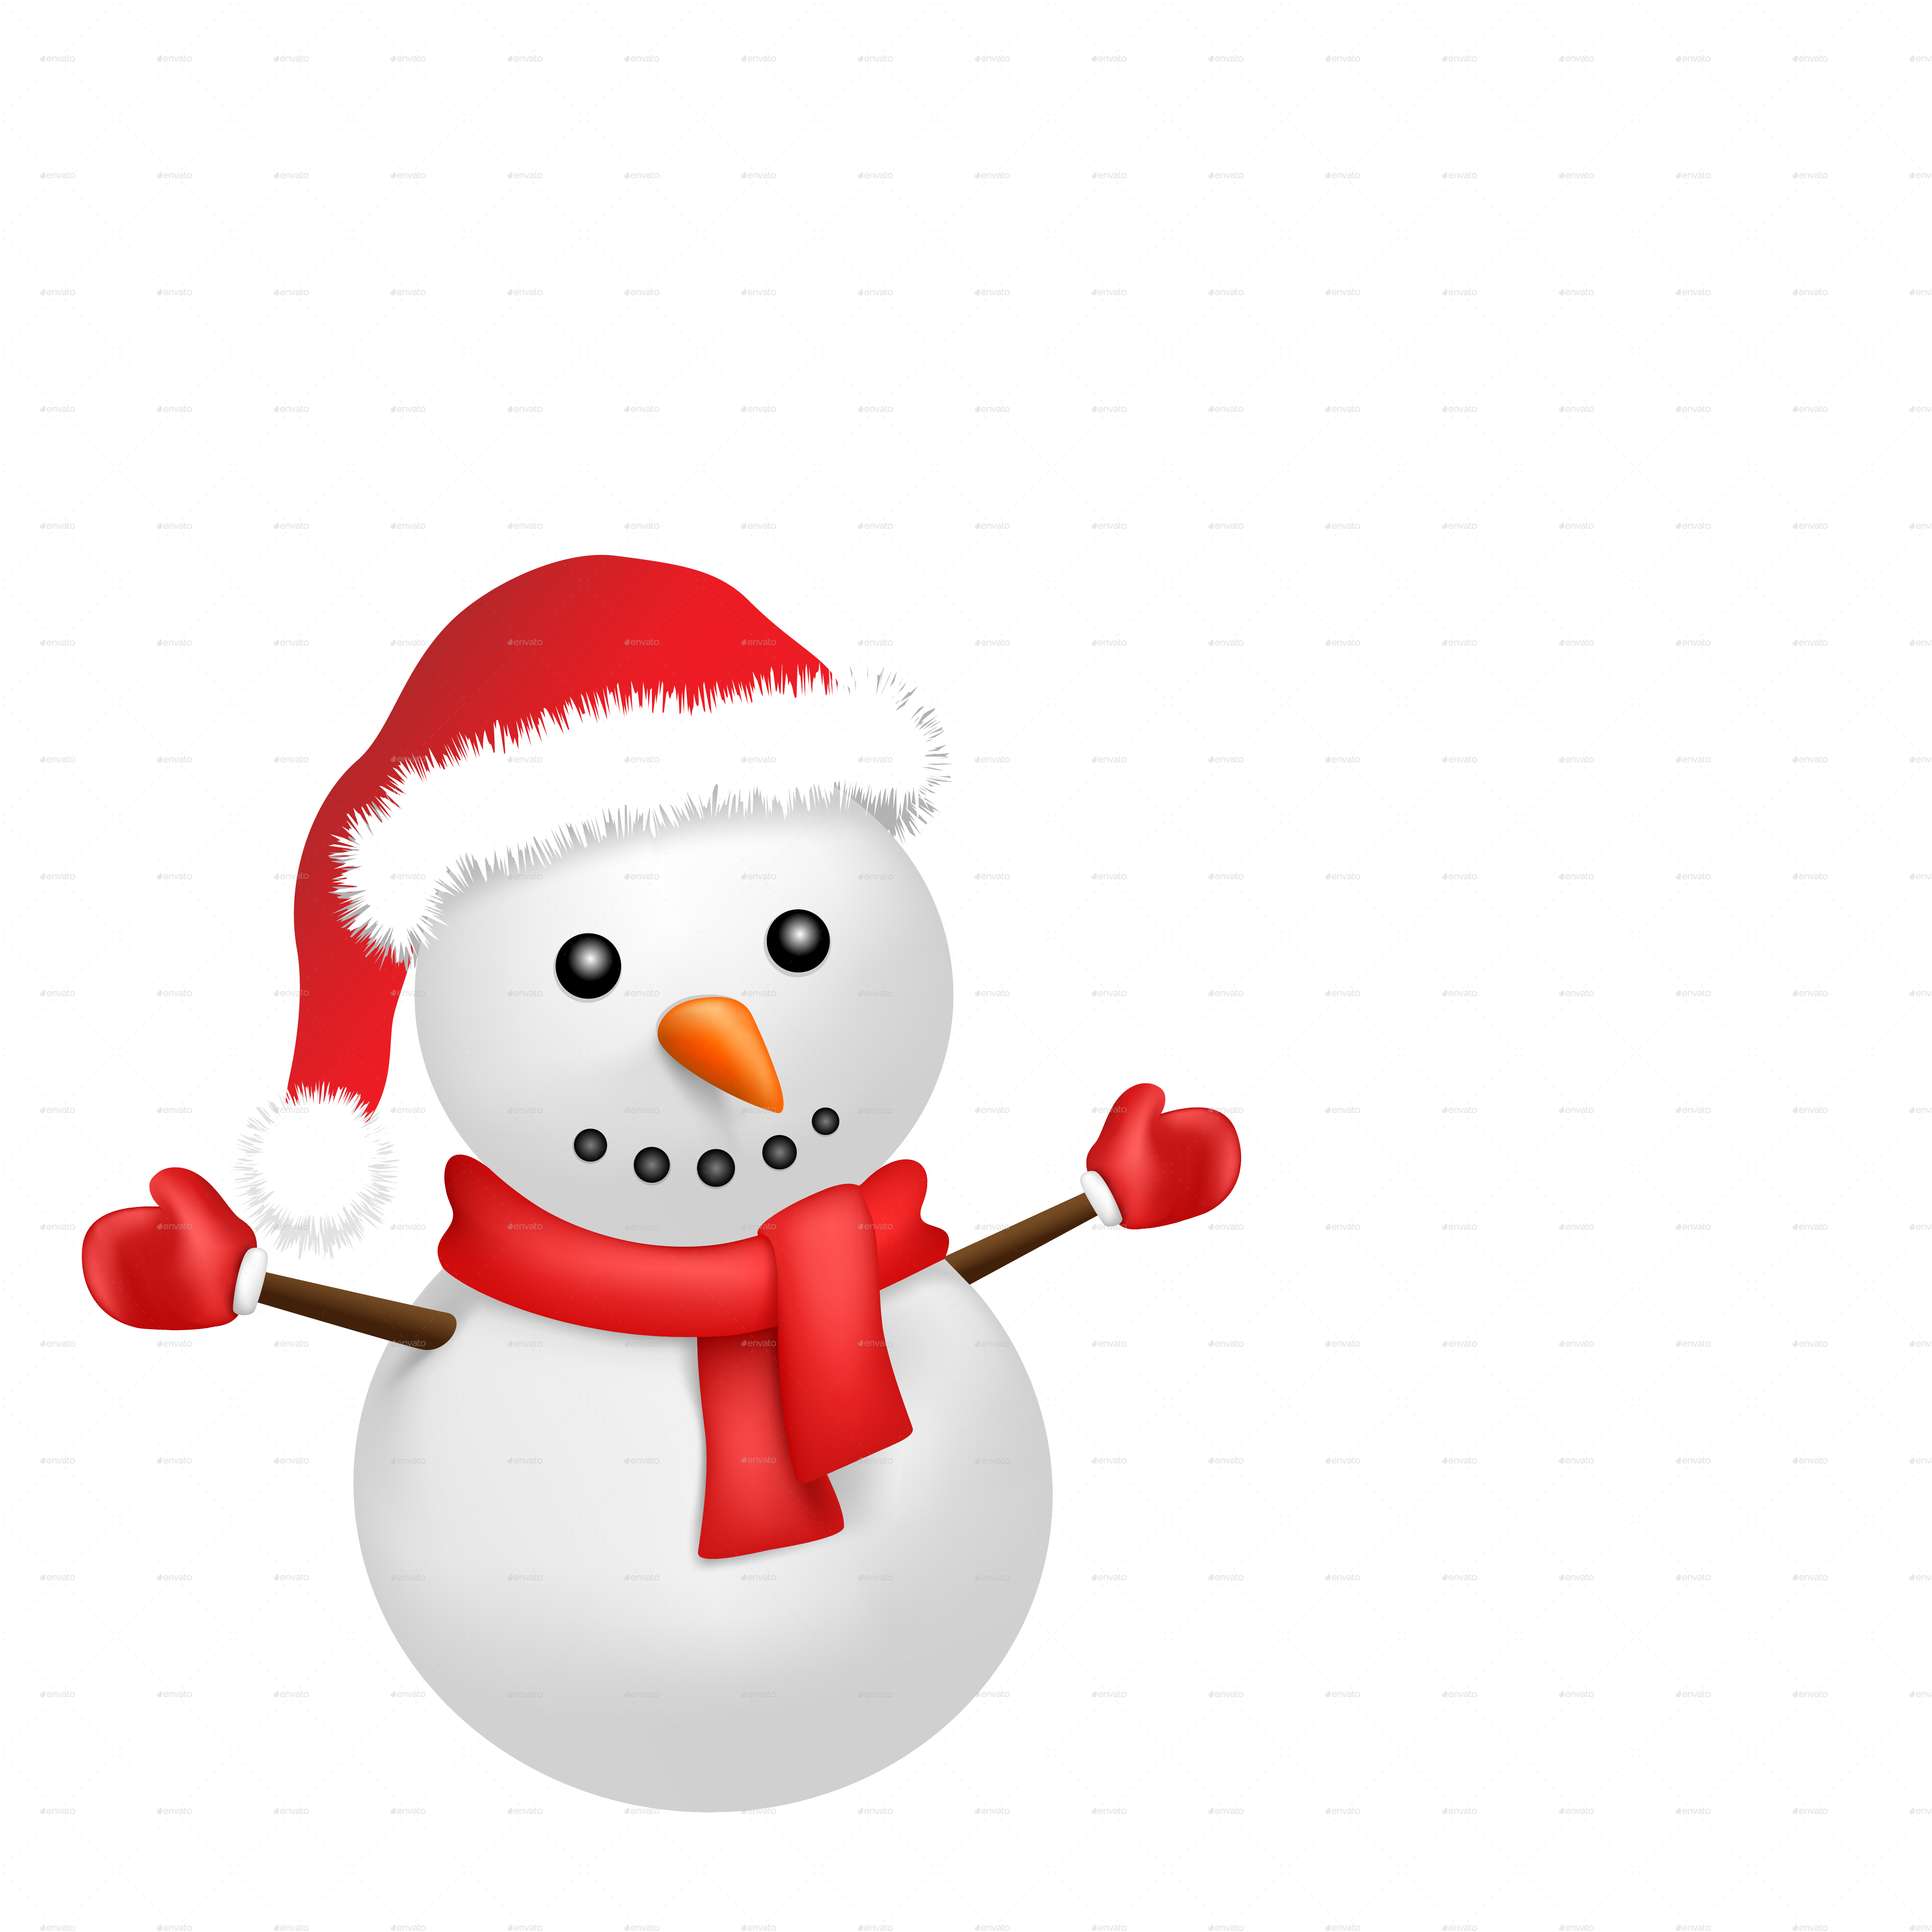 Snowman snowflake banner clipart royalty free library Snowman and Snowfall by romvo | GraphicRiver royalty free library